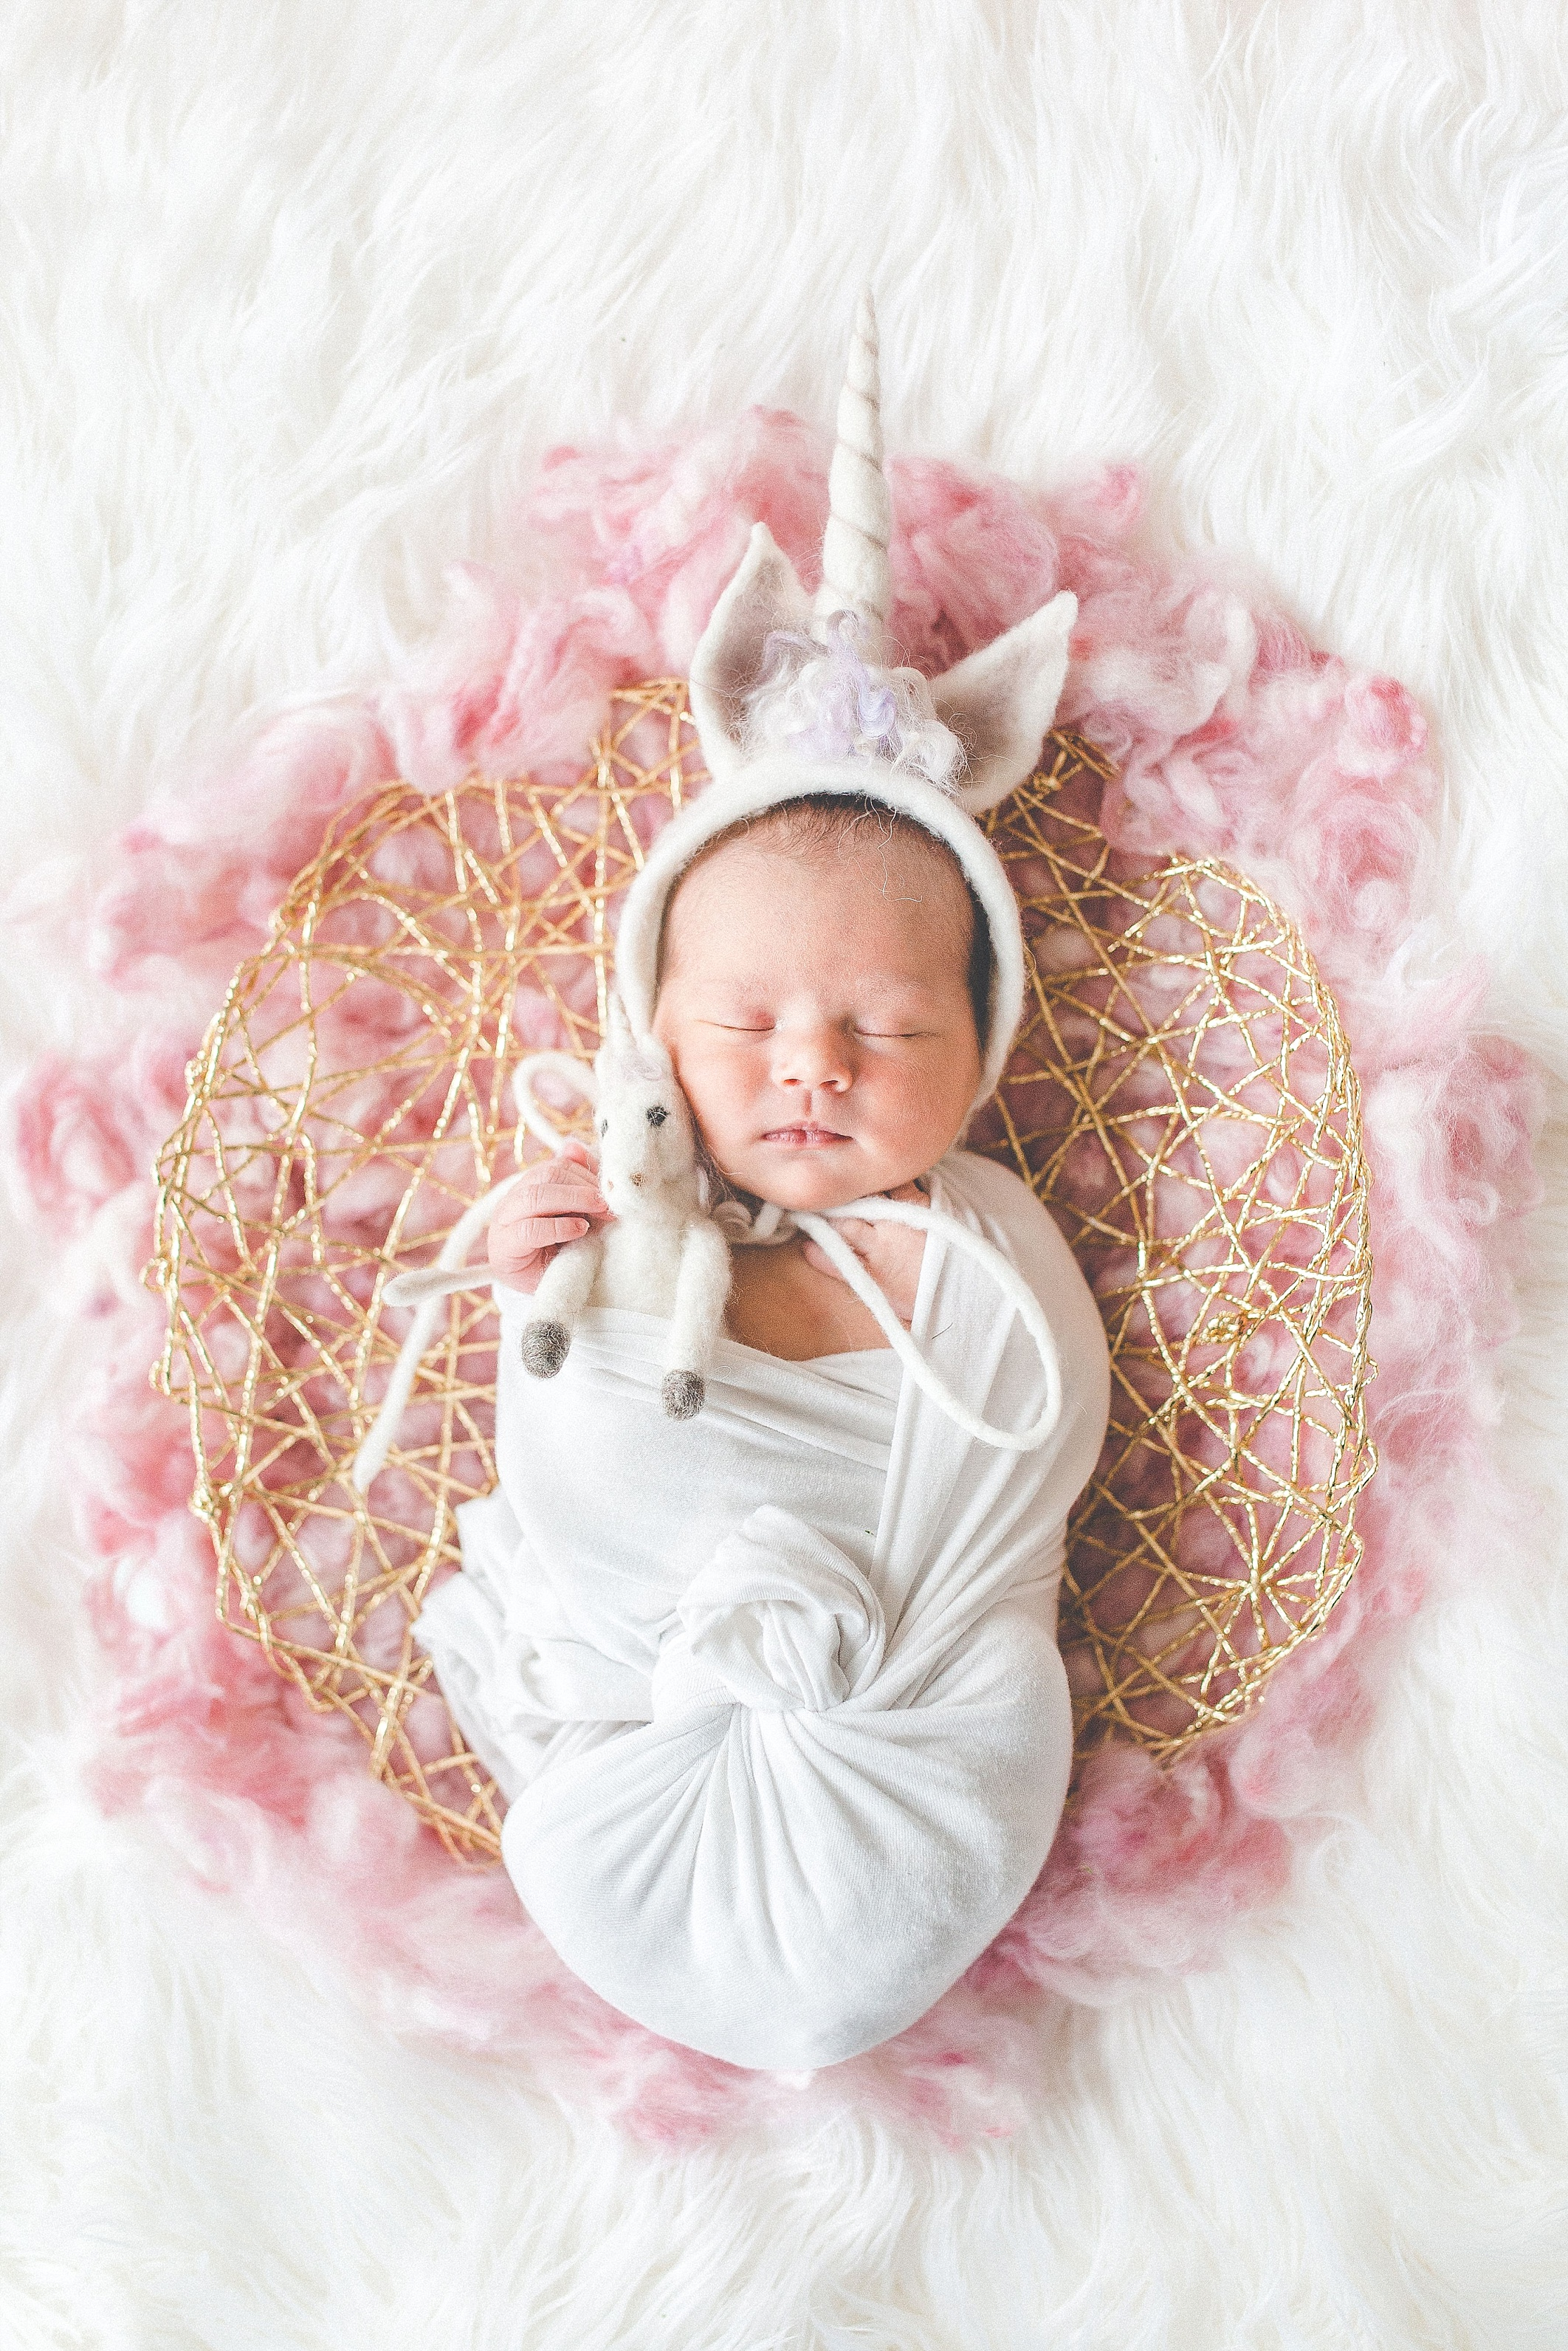 dayton-newborn-photographer-ohio-baby_0003.jpg